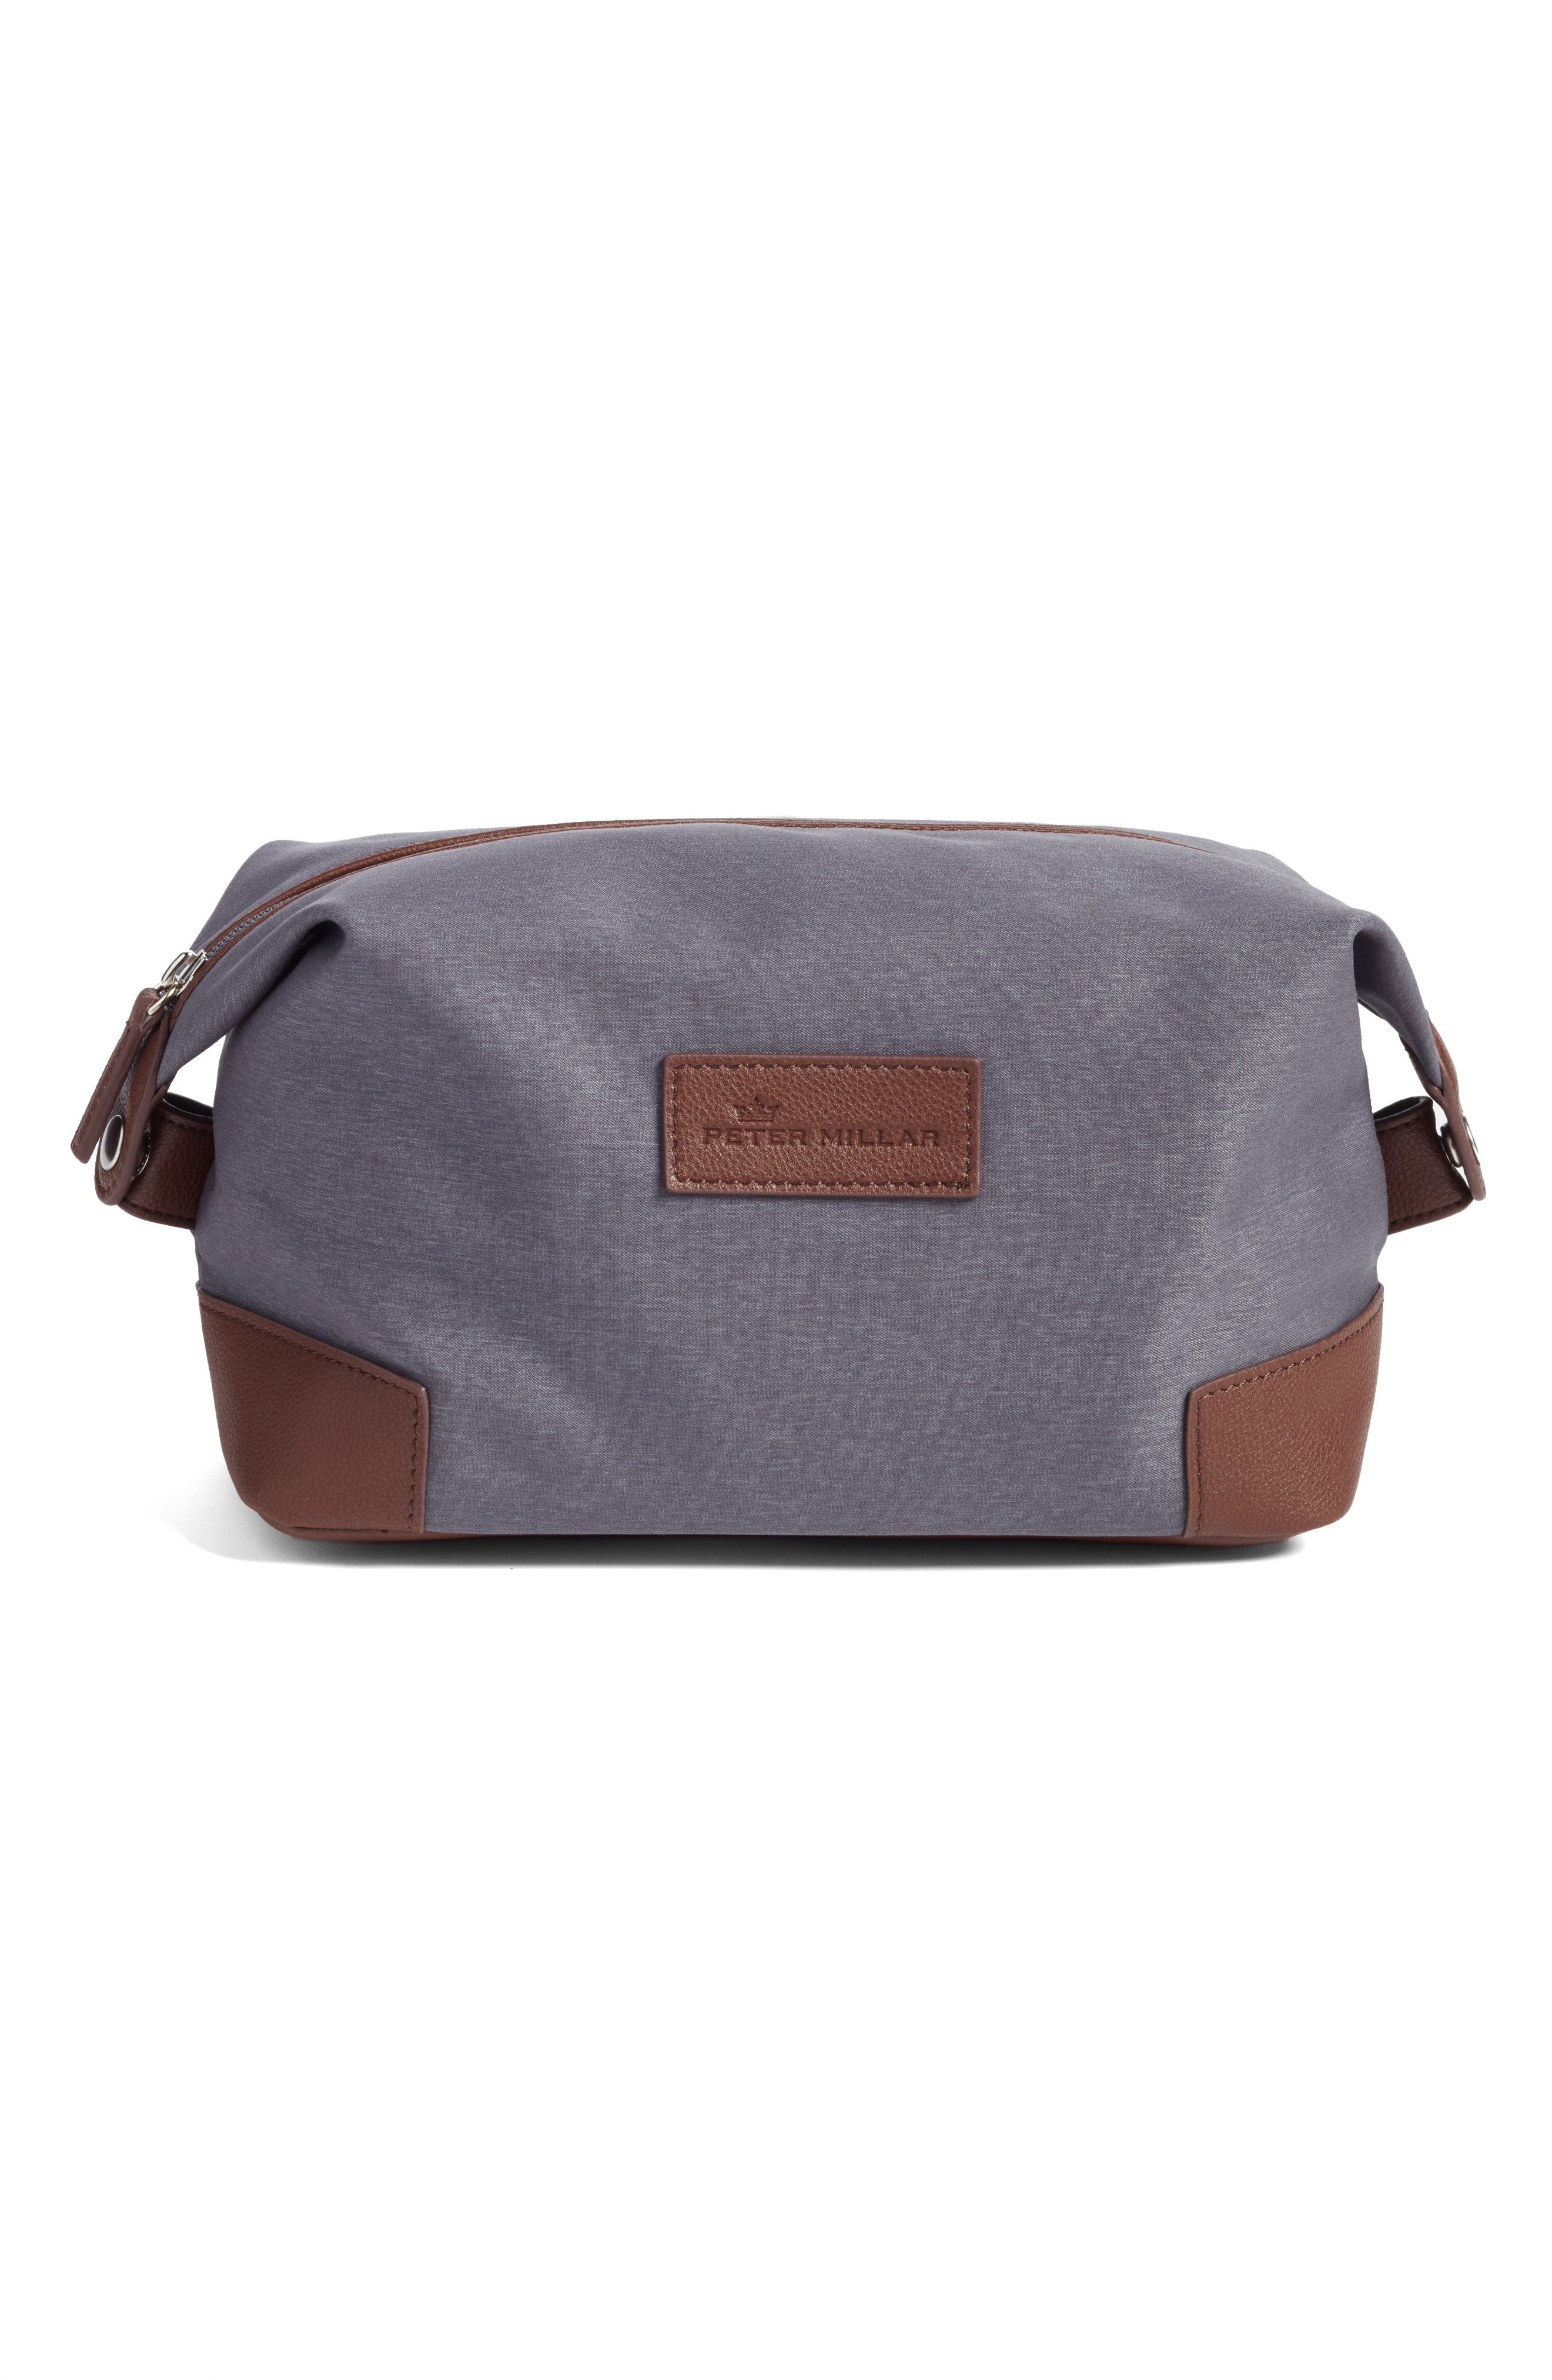 Heathered Twill Dopp Kit,                         Main,                         color, Charcoal